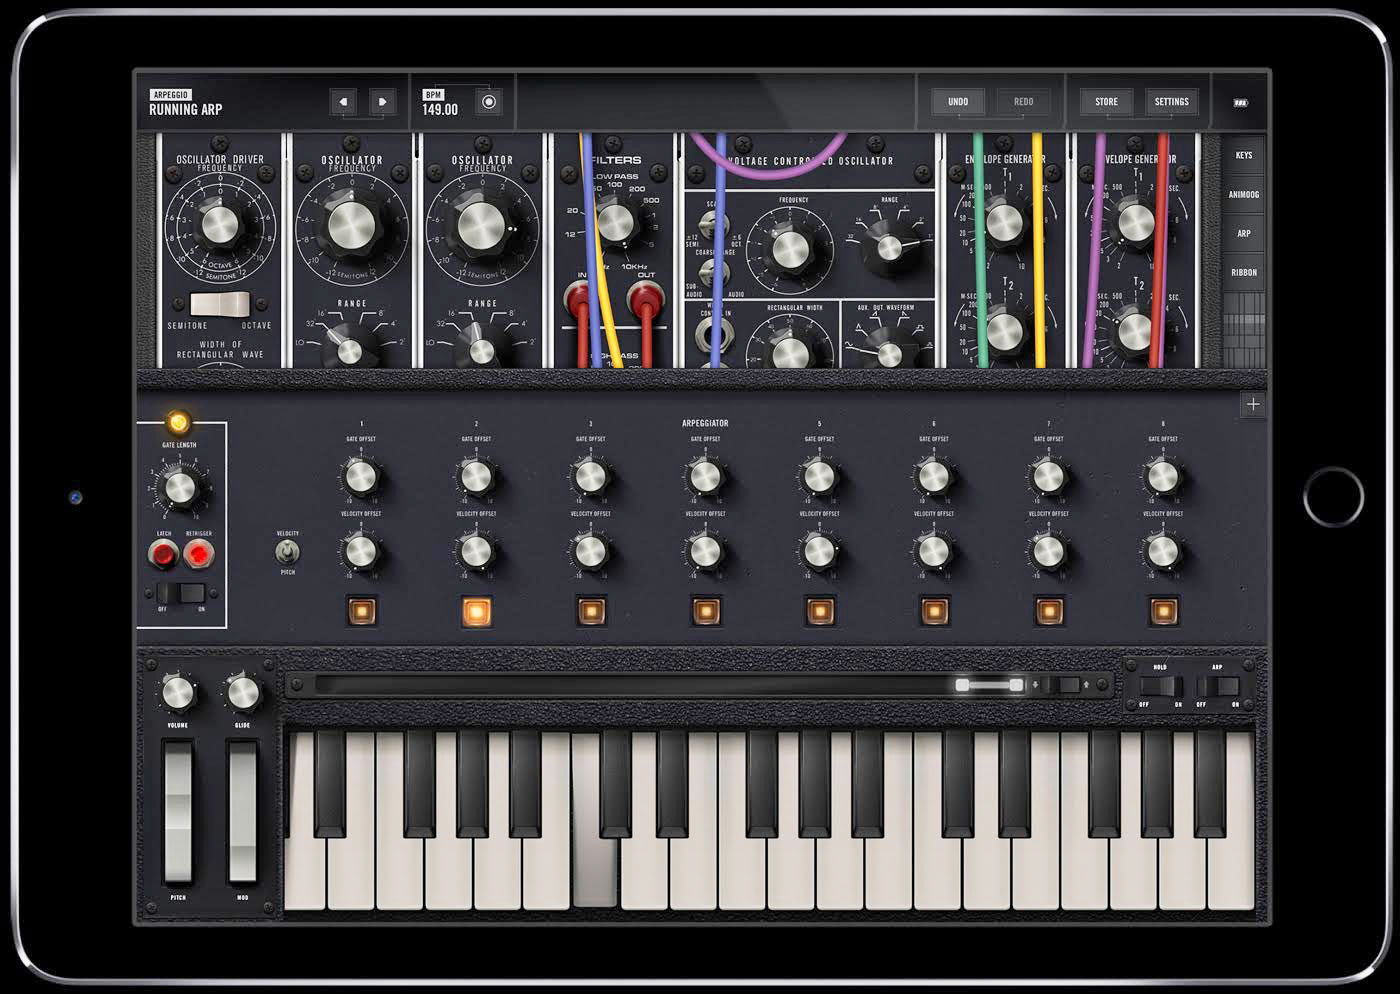 moog 39 s new app brings the iconic model 15 synth to your ipad. Black Bedroom Furniture Sets. Home Design Ideas